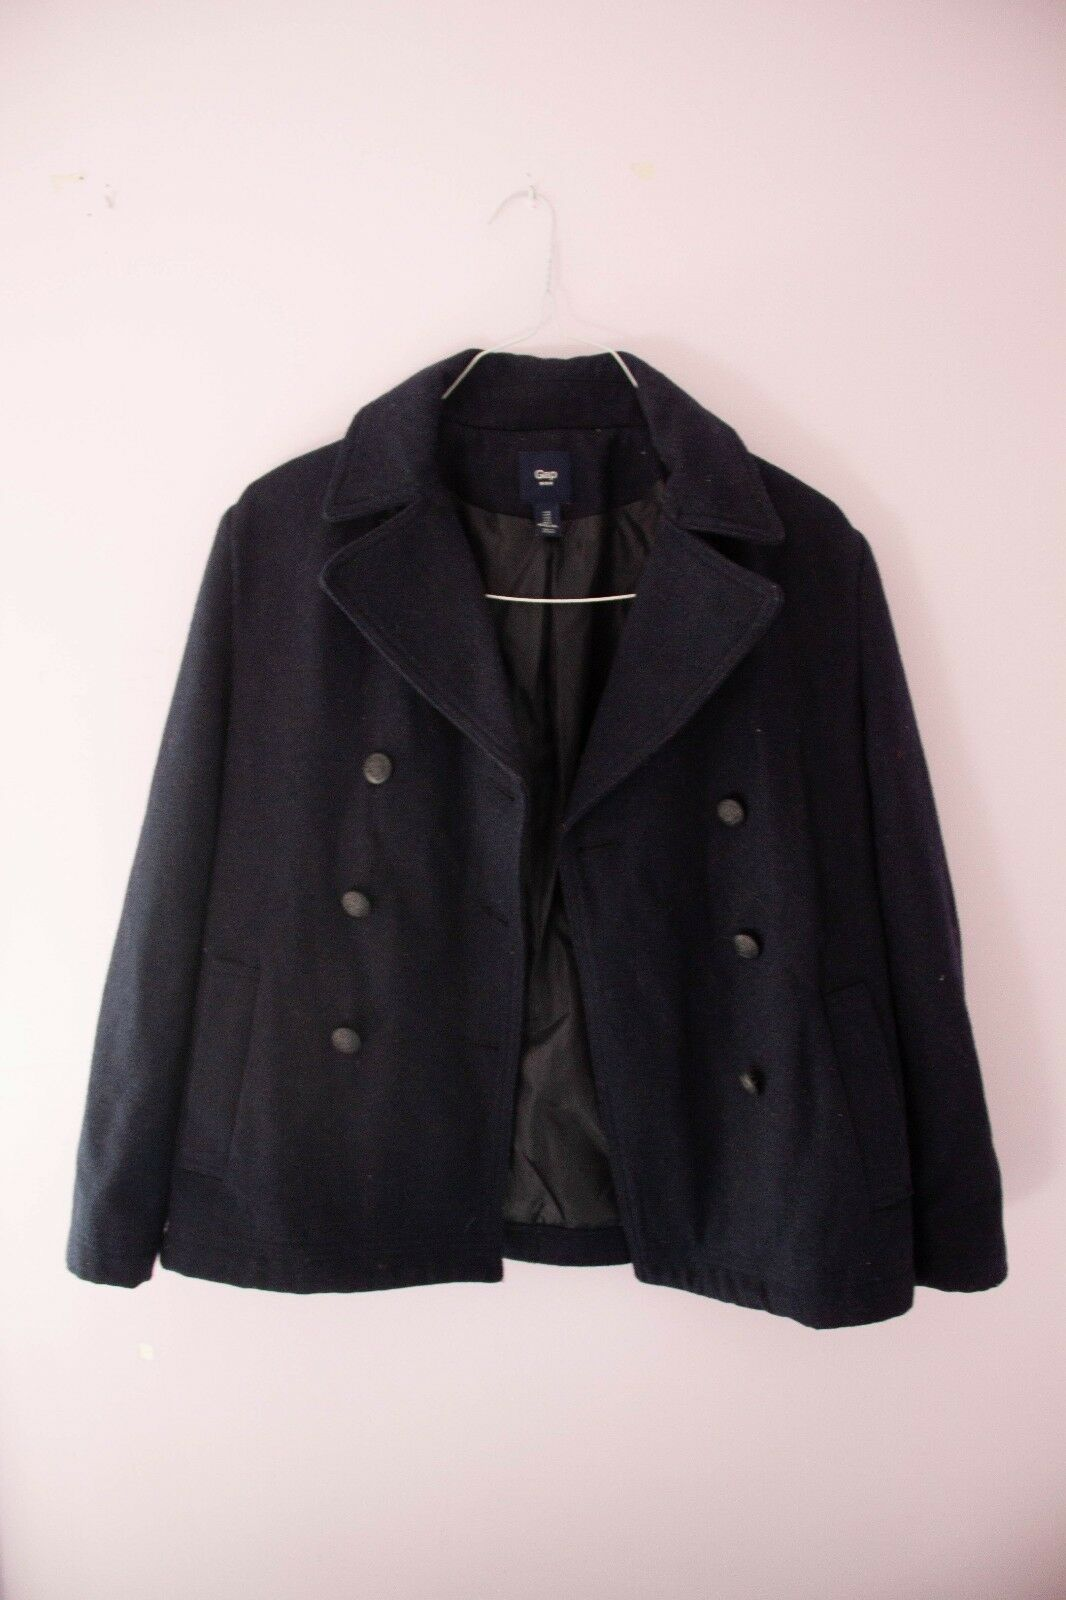 Women's Gap navy bluee pea coat, size S, perfect condition, slim fit